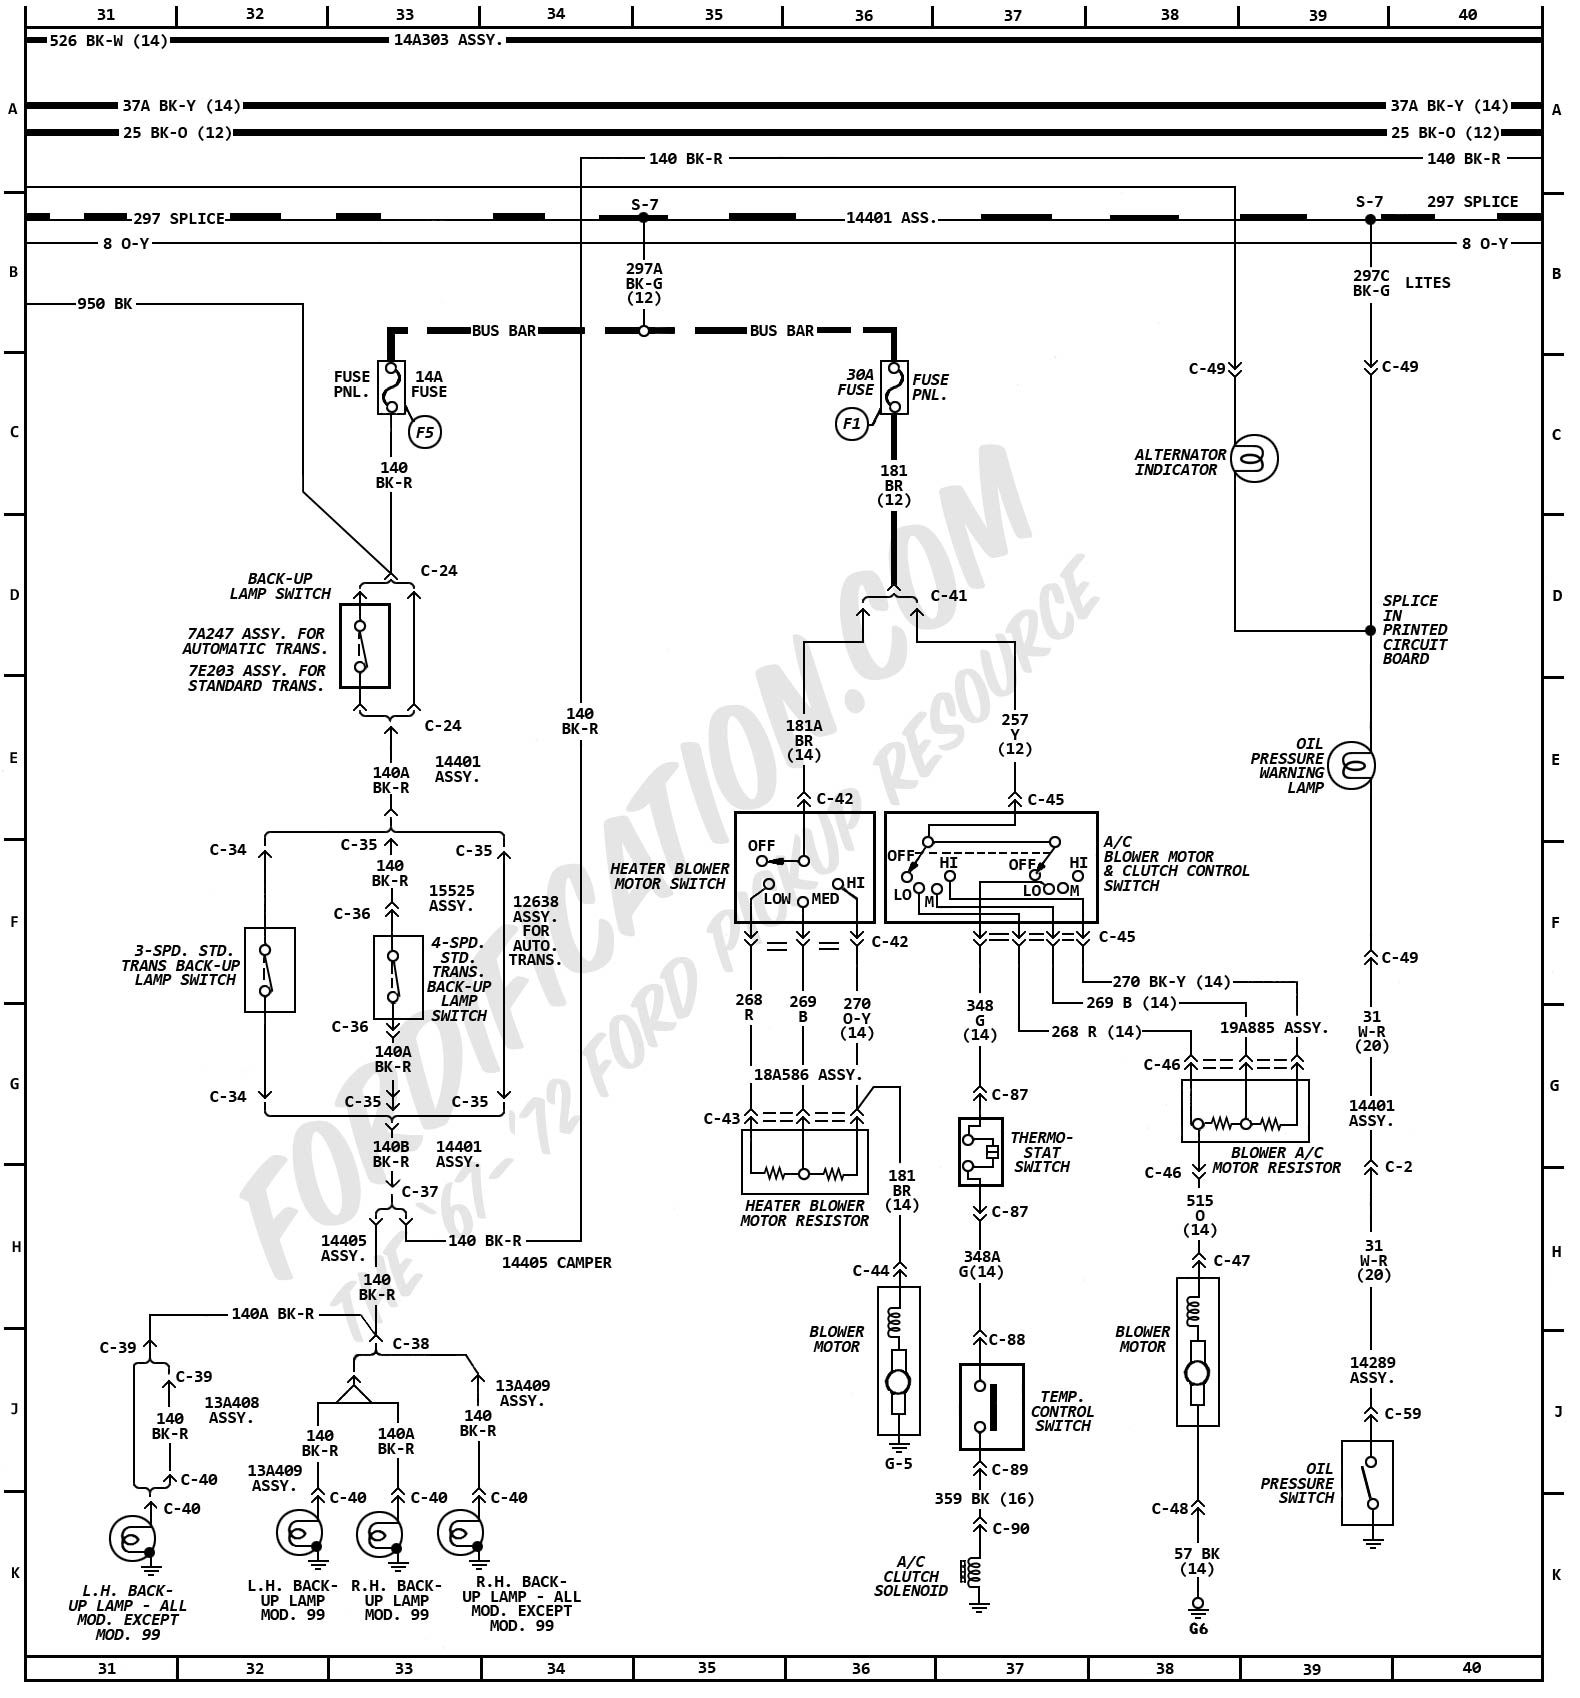 1965 Mustang Engine Wiring Harness Schematic Library Dodge Ram Alternator Diagram Ford Motor Detailed Schematics Rh Highcliffemedicalcentre Com 1966